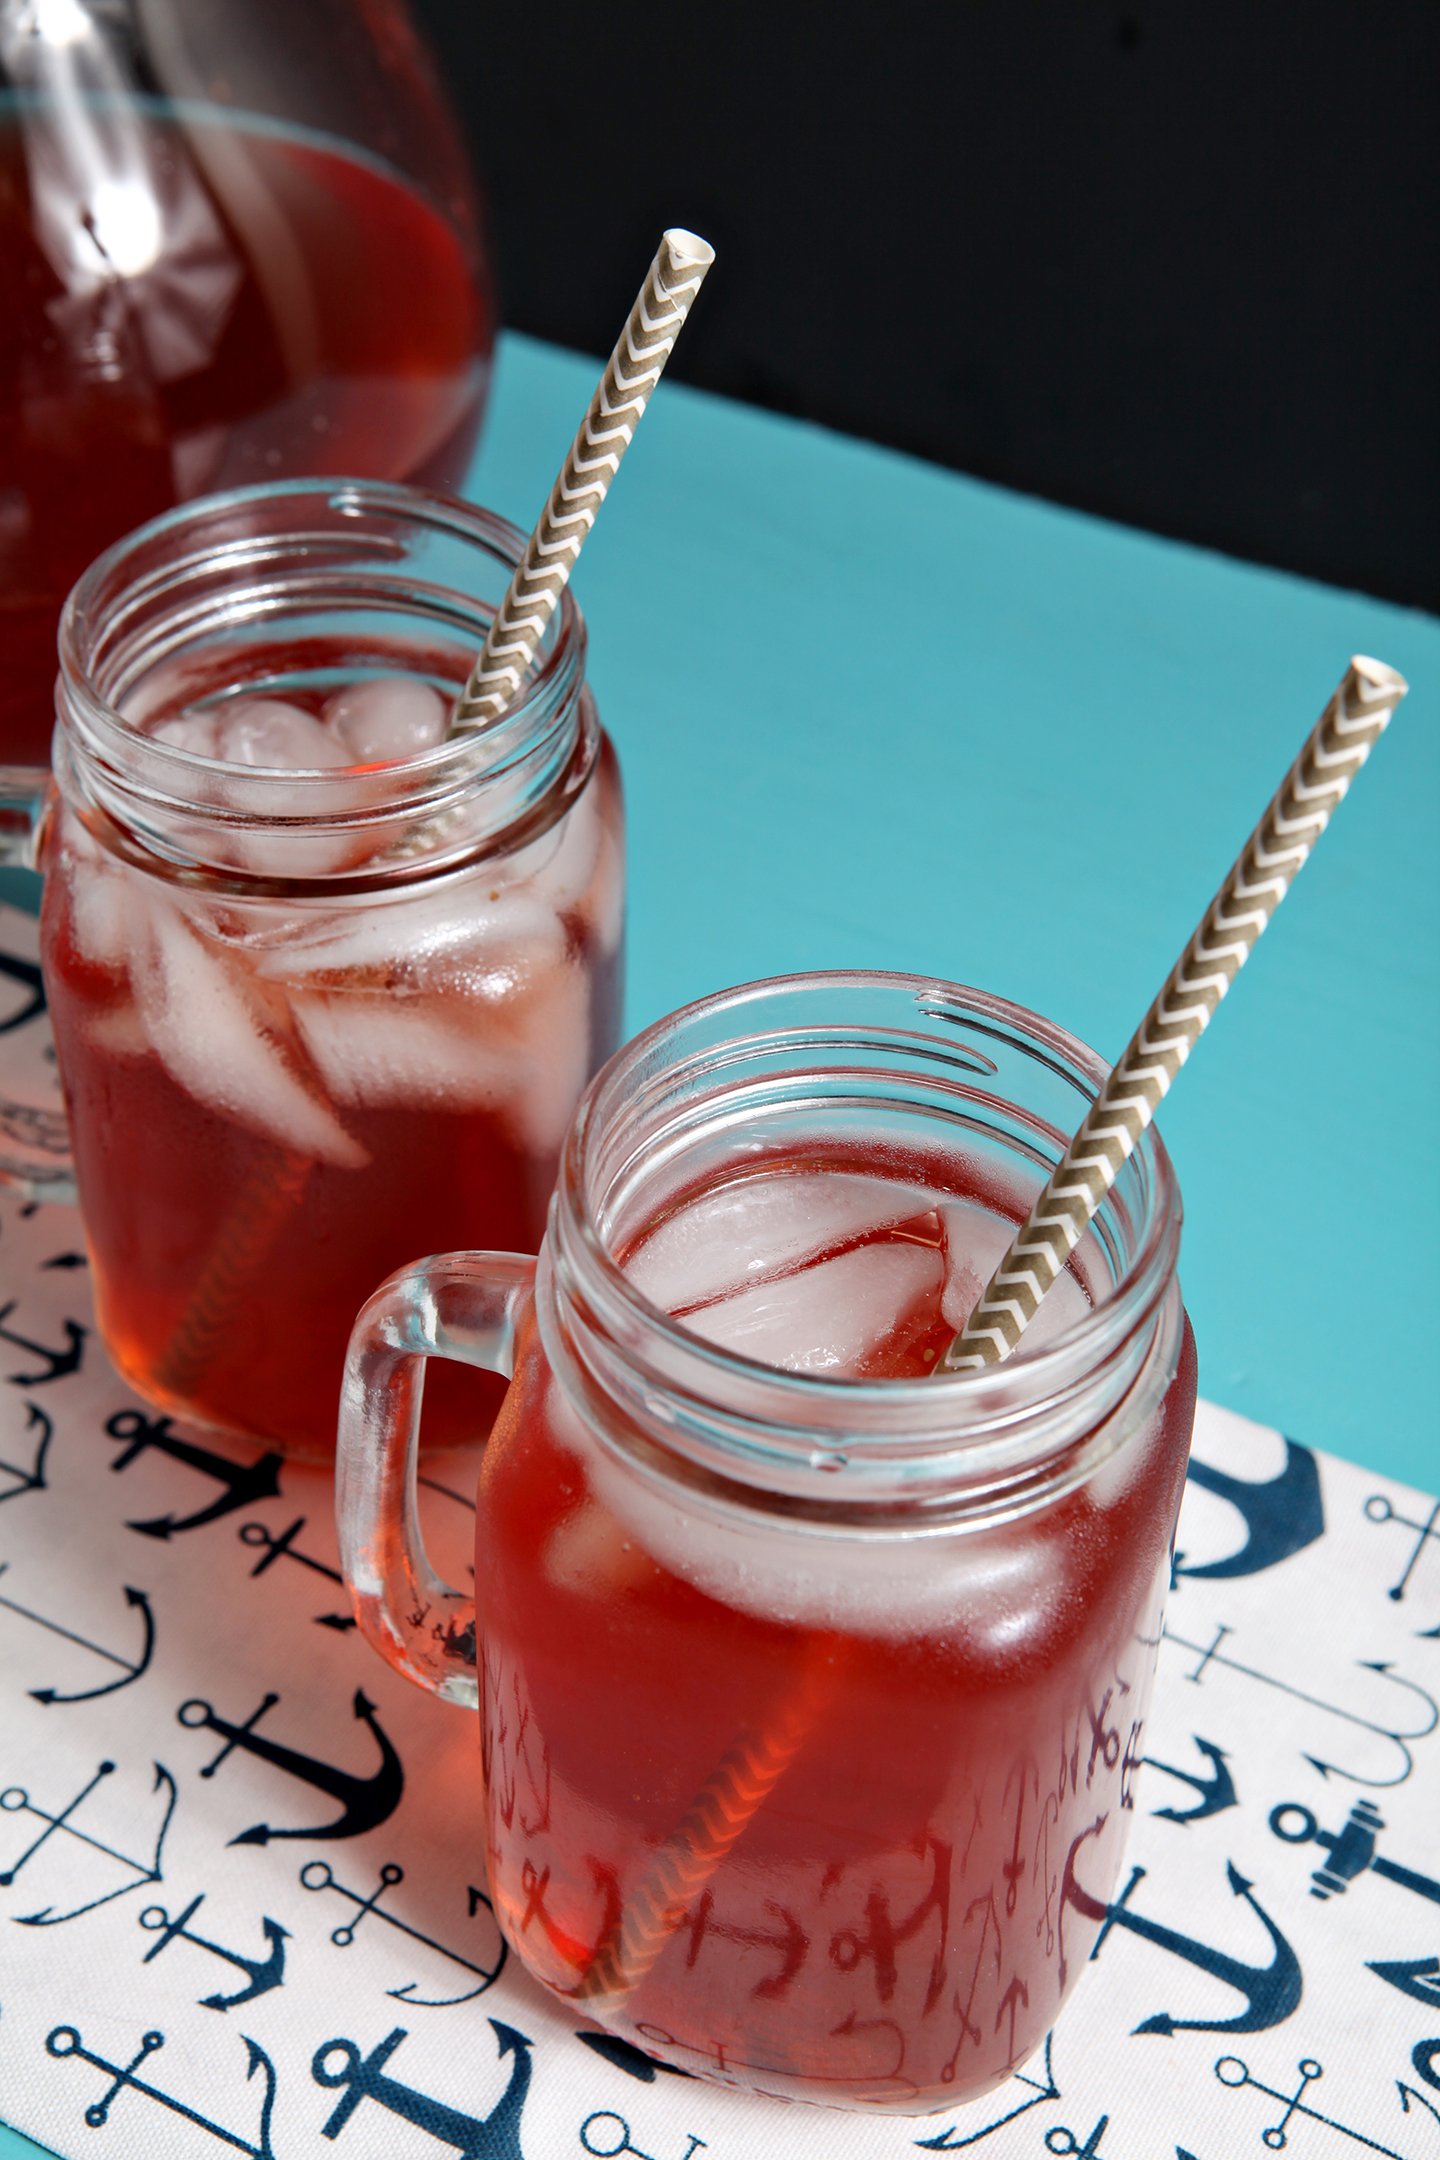 Strawberry Sweet Tea | Stay cool during the dog days of summer with this refreshing Strawberry Sweet Tea! Singing of strawberries and summertime sweetness, this tea is perfect to sip during a warm afternoon.